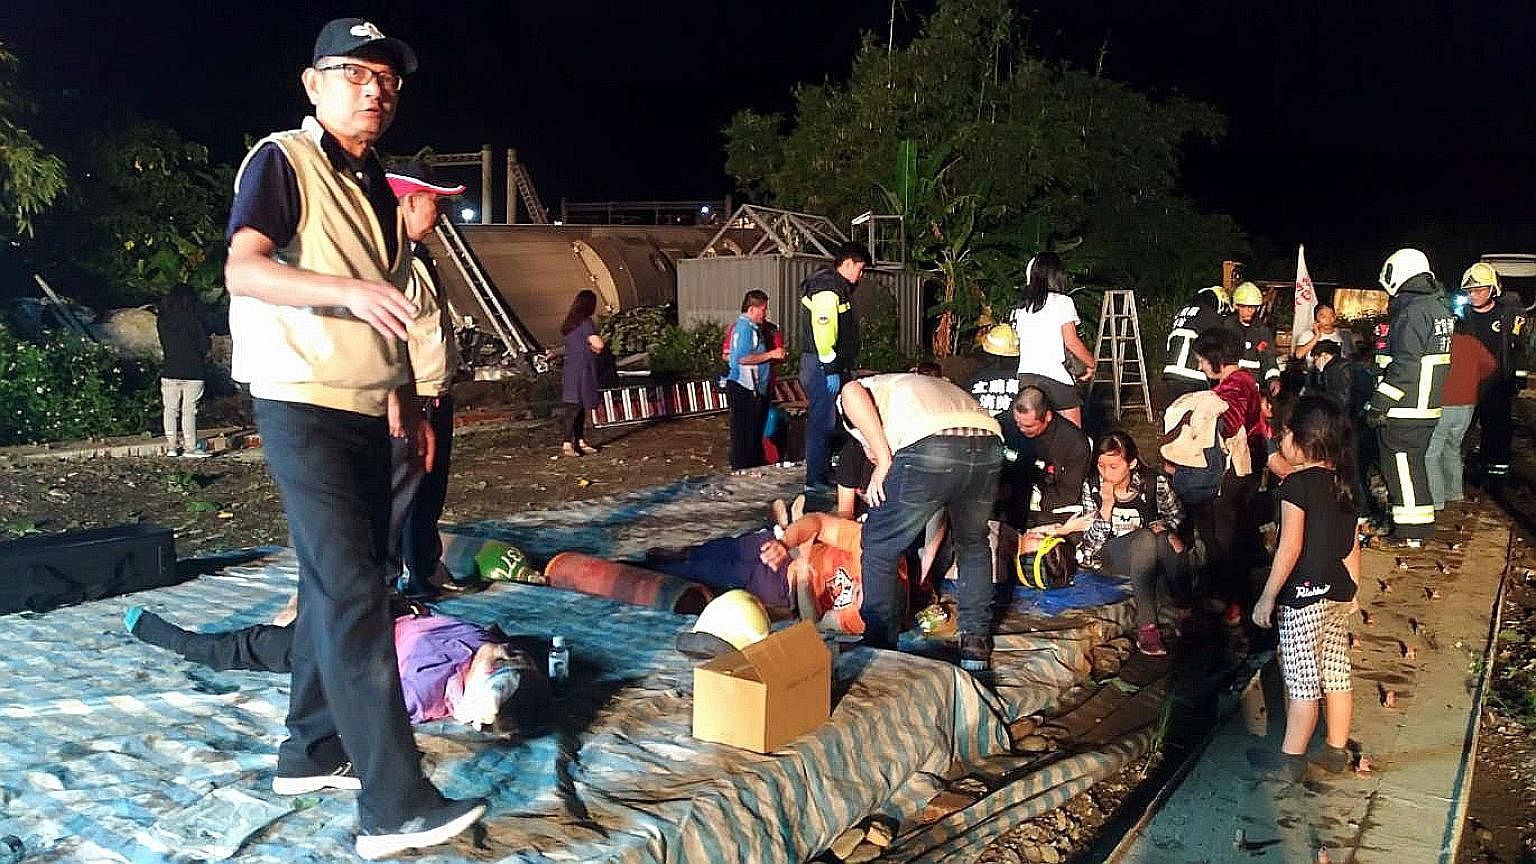 A Taiwan Defence Ministry photo showing rescuers attending to victims of the train accident in Yilan yesterday. Hundreds of medics and firefighters have been dispatched to the scene. The army is also sending 100 troops.